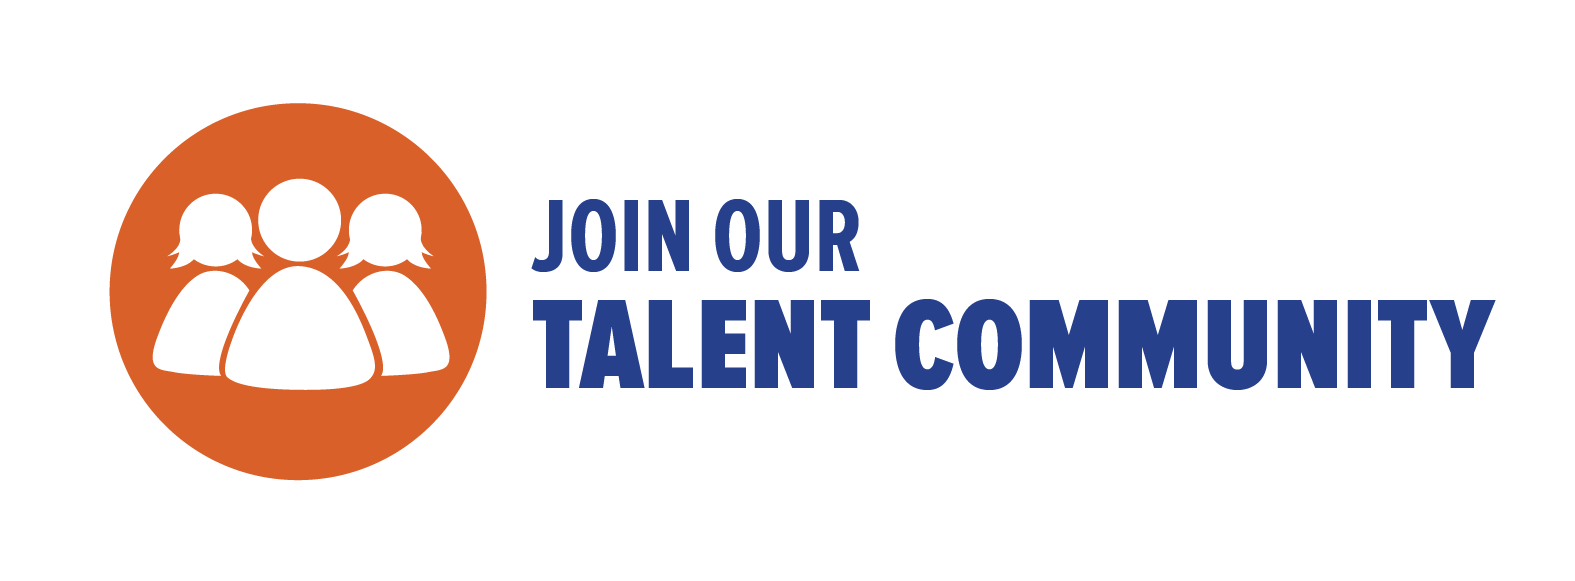 careers if you are not ready to apply to a role but want to be considered for future opportunities please consider joining our talent community